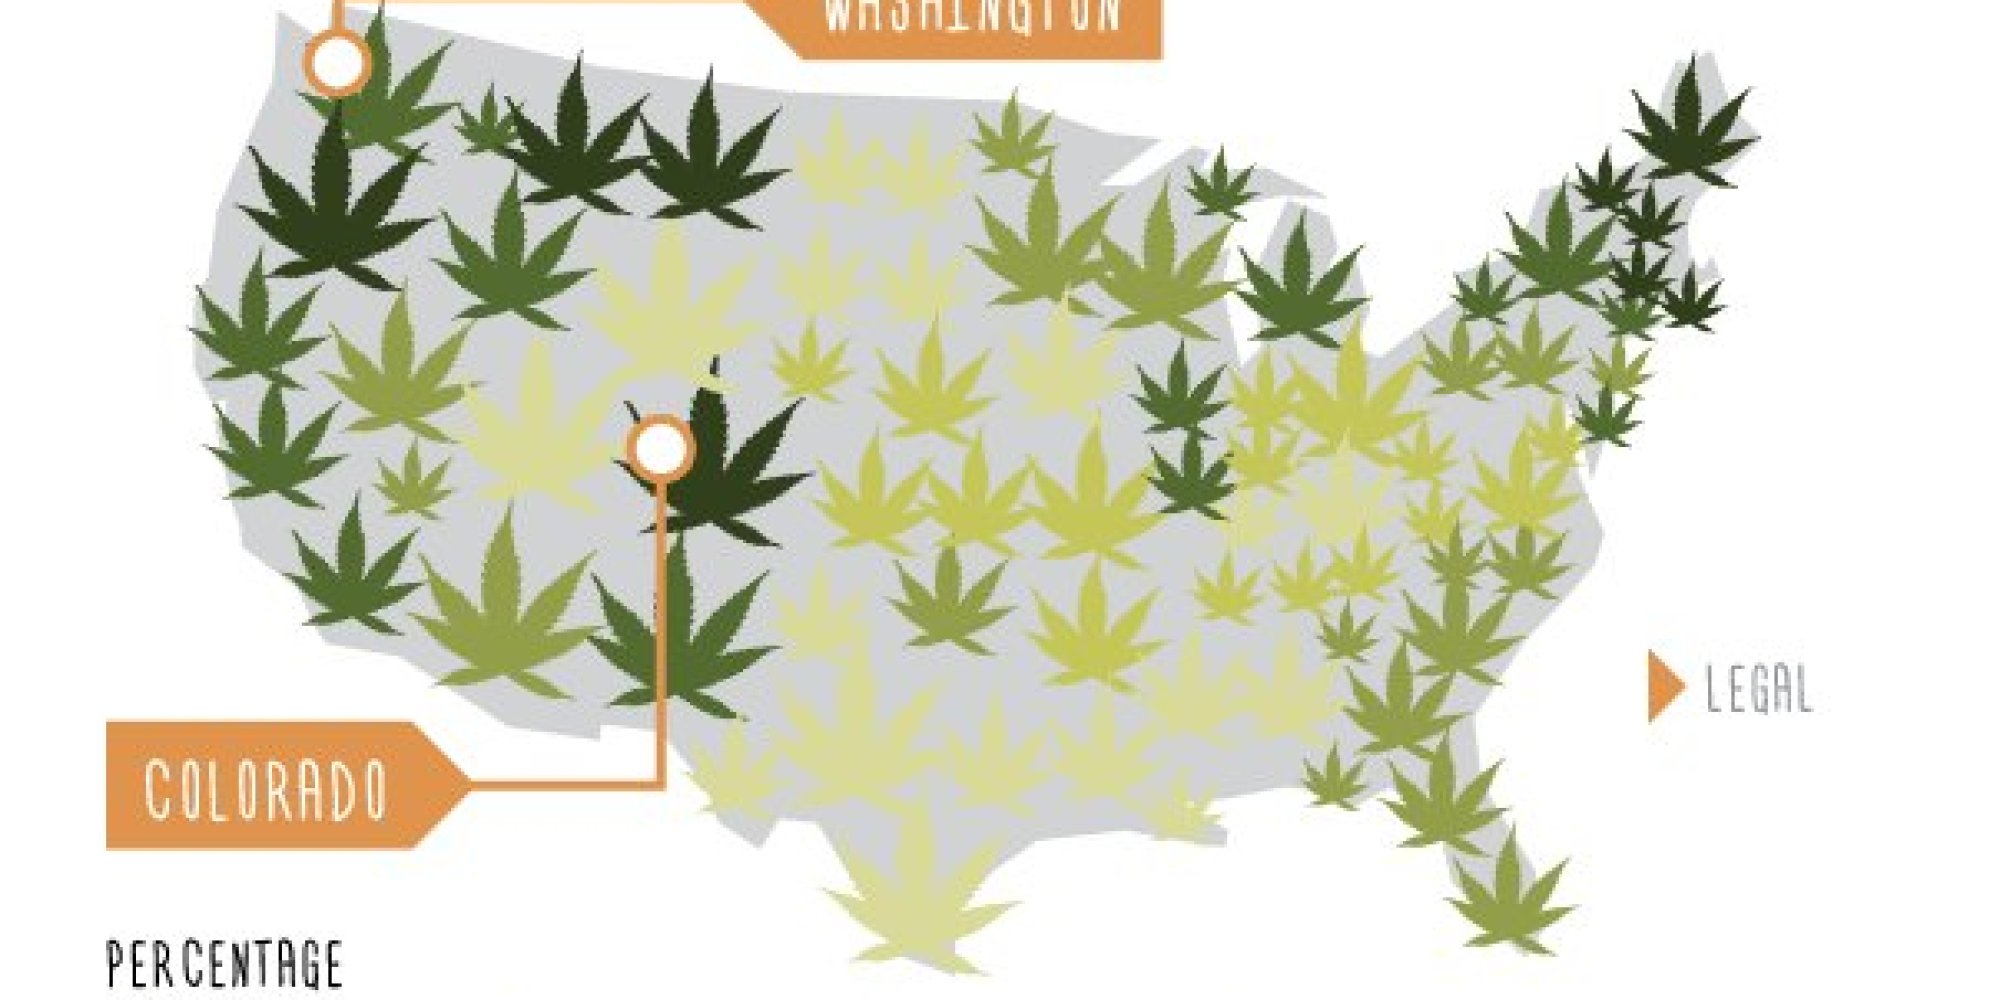 how to get weed sent to you